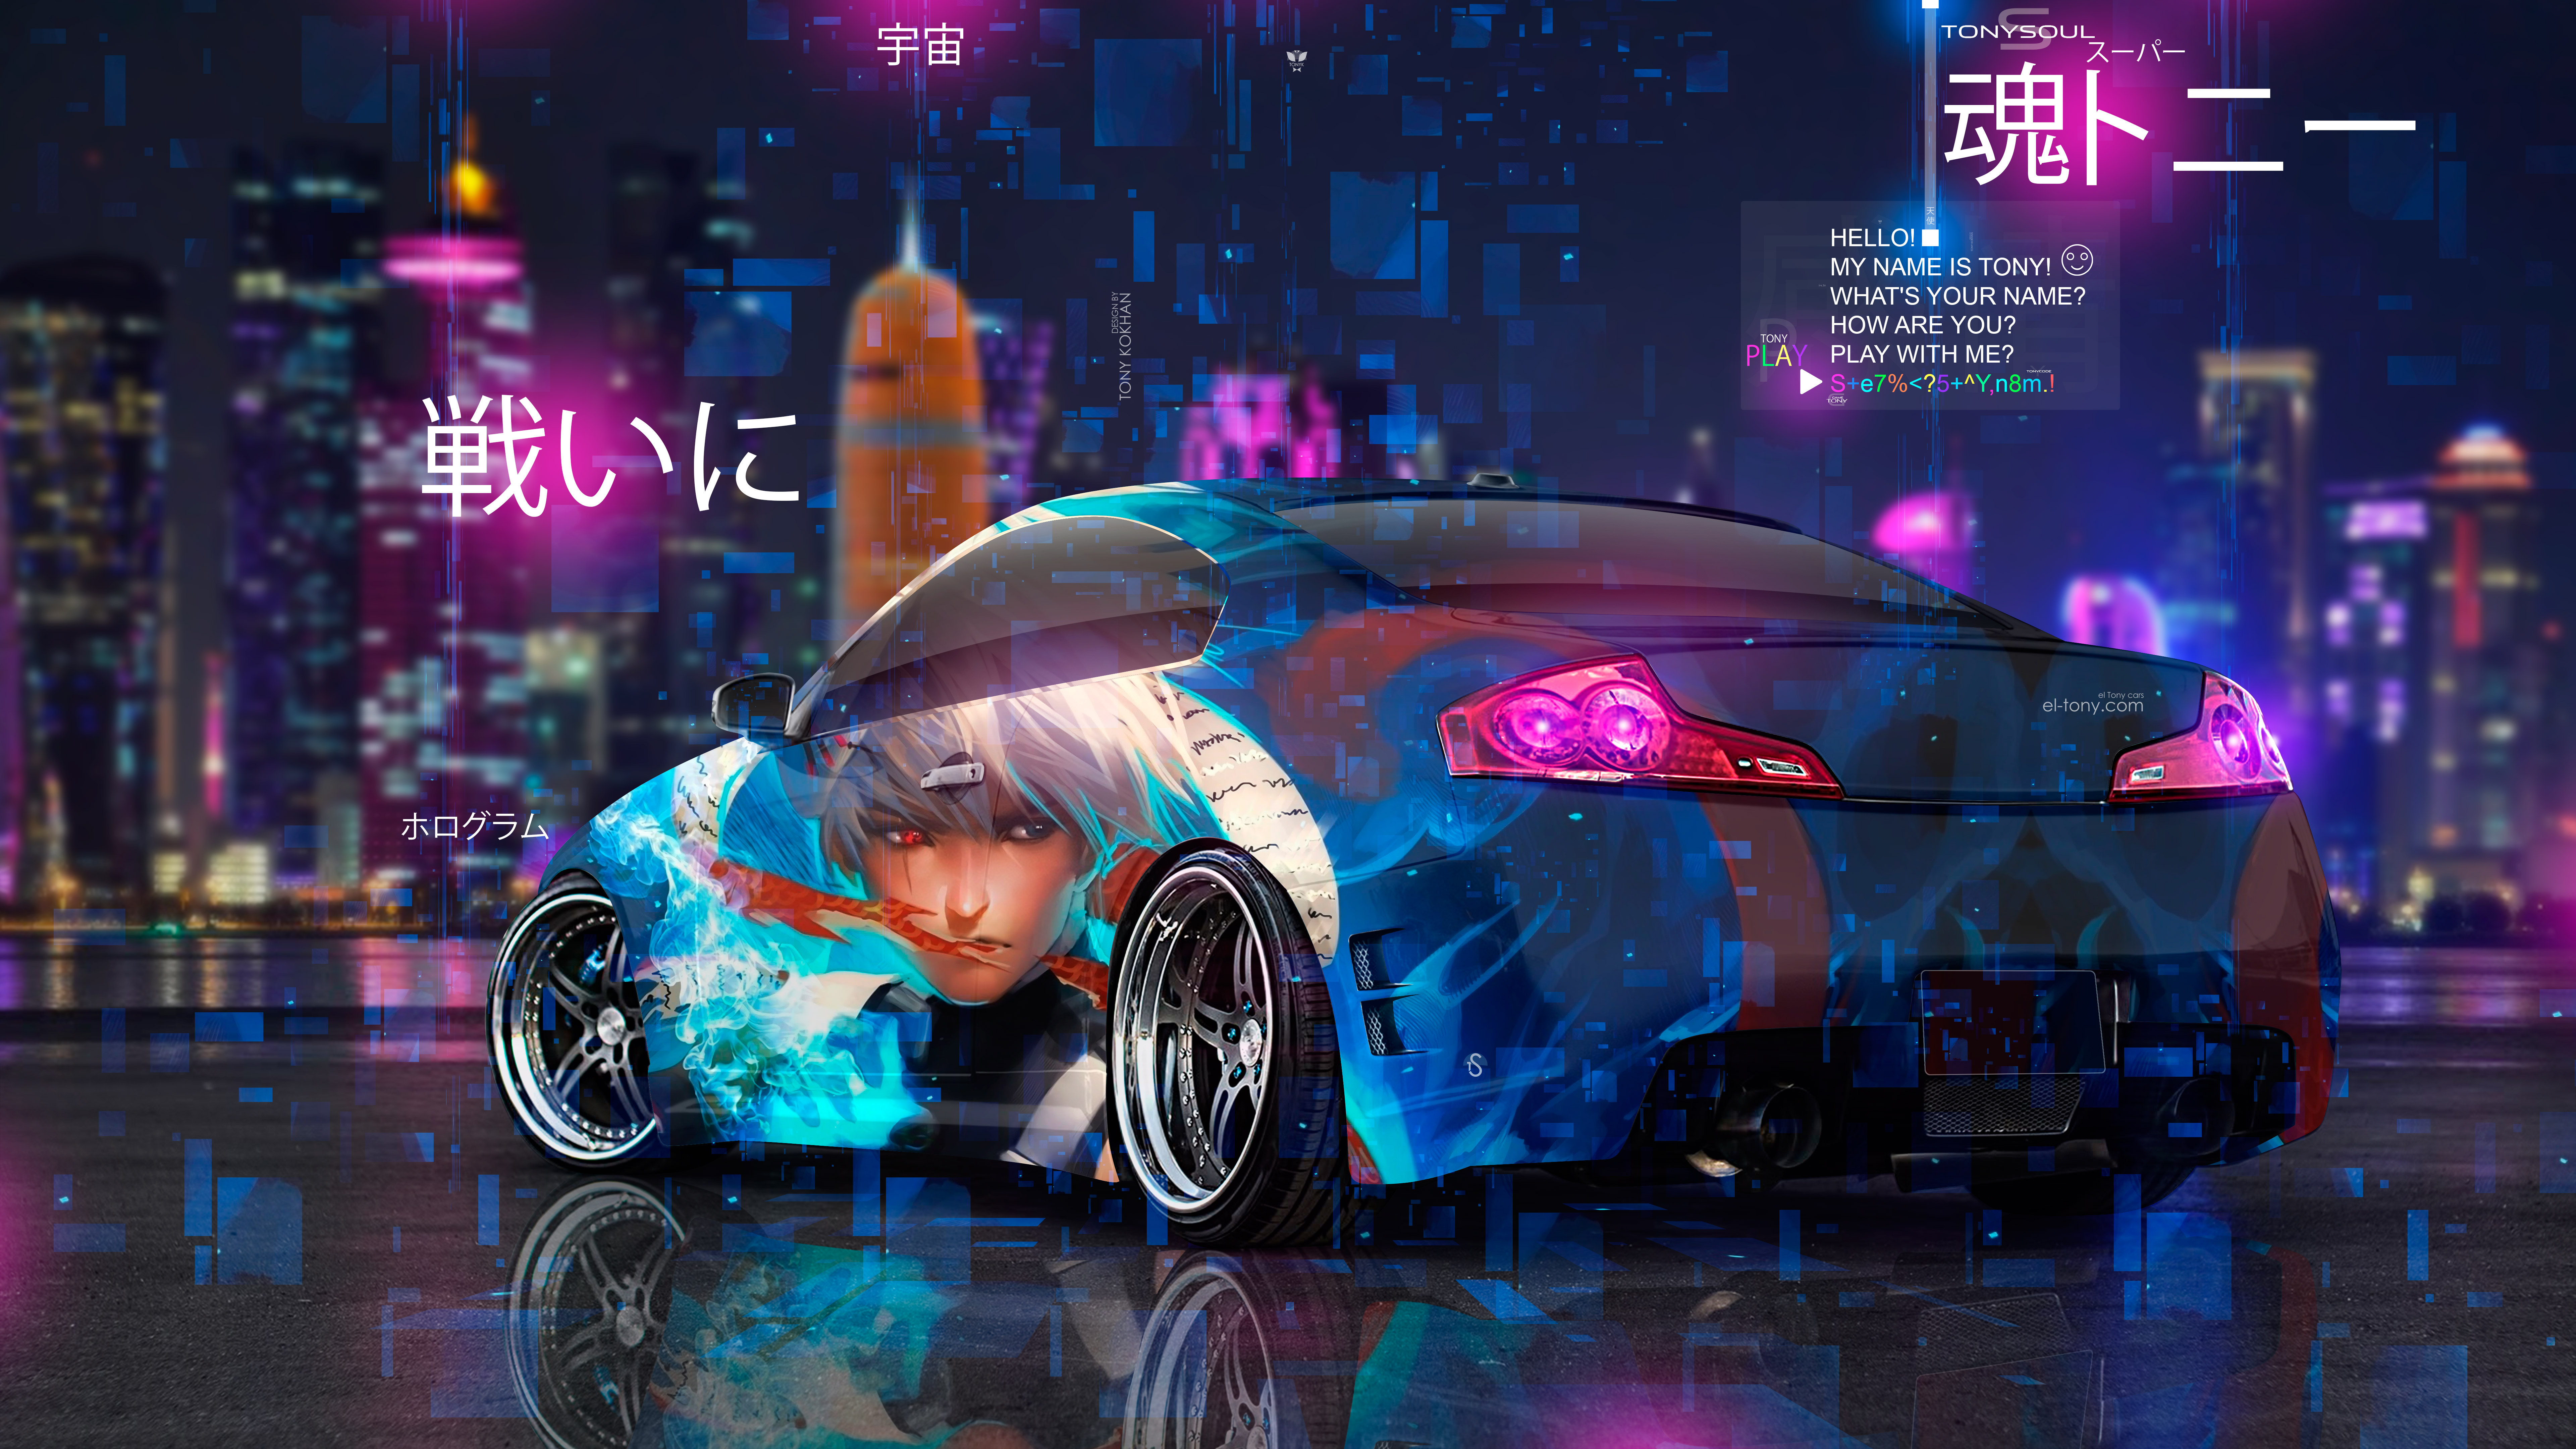 Nissan-Skyline-JDM-Tuning-Infiniti-G37-Super-Anime-Kakashi-Sharingan-Naruto-Battle-Night-City-TonyCode-TonySoul-Car-2019-Multicolors-8K-Wallpapers-by-Tony-Kokhan-www.el-tony.com-image